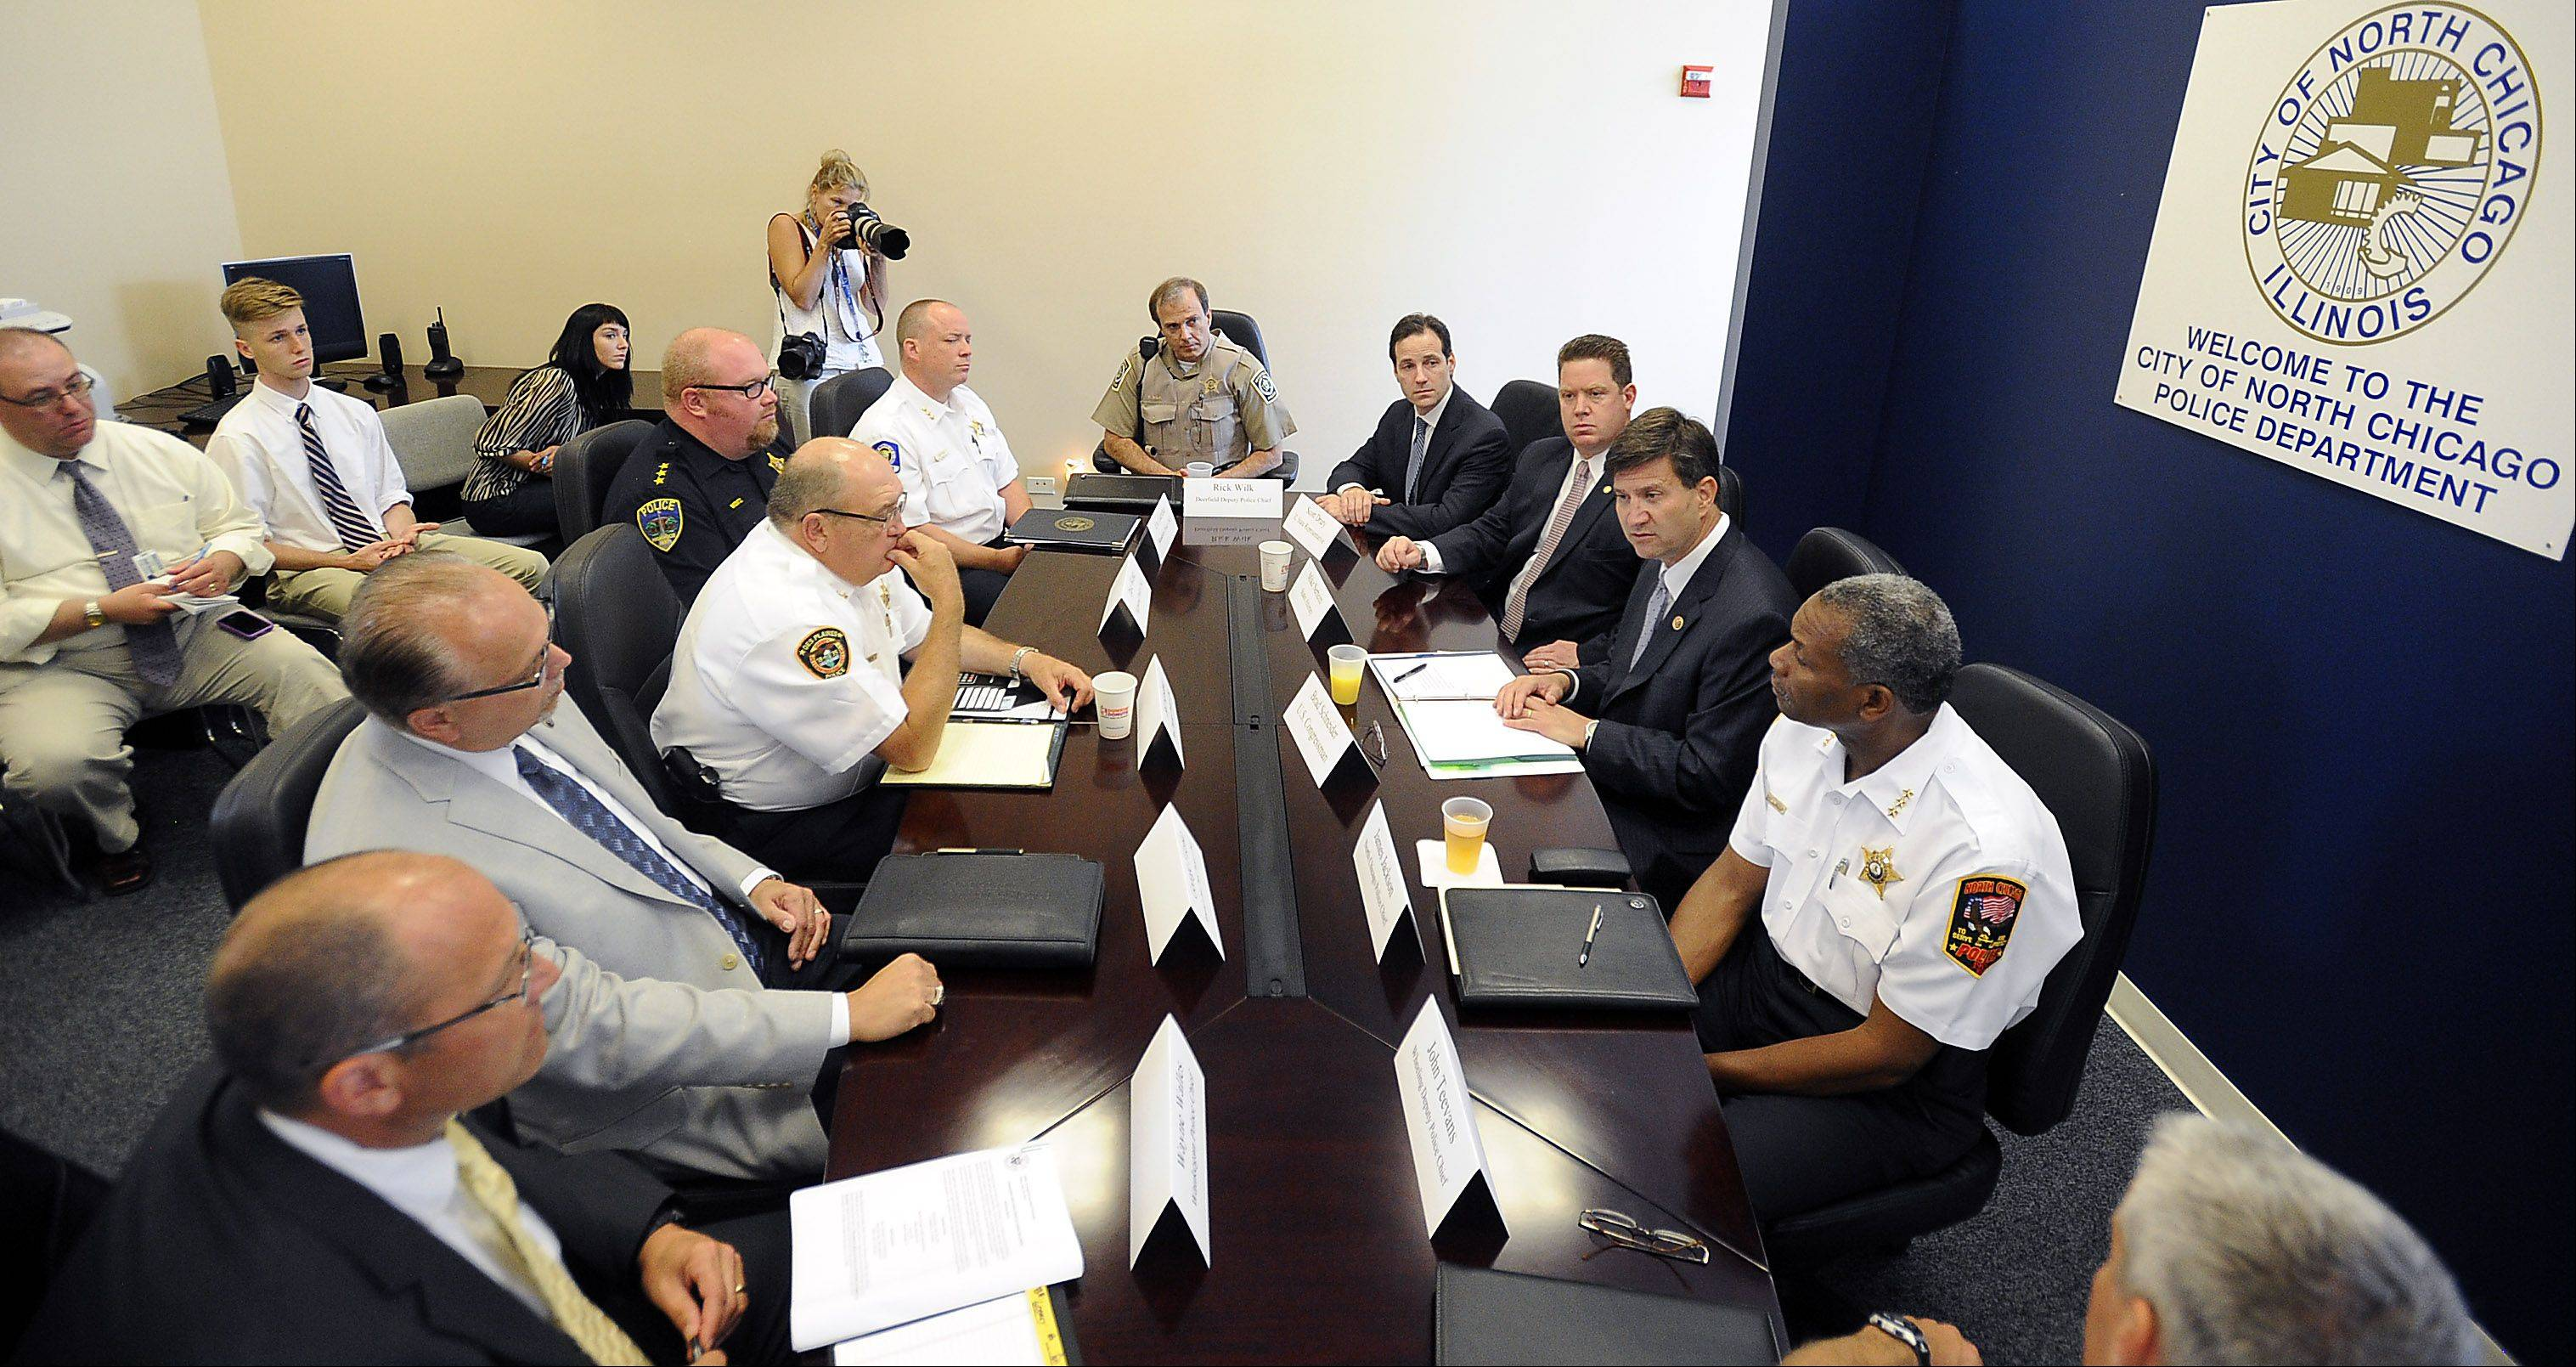 U.S. 10th District congressman Brad Schneider, center/right, talks with North Chicago Police Chief James Jackson, right, and other area police chiefs about ways to combat gun violence on local, federal and state levels in North Chicago on Wednesday.